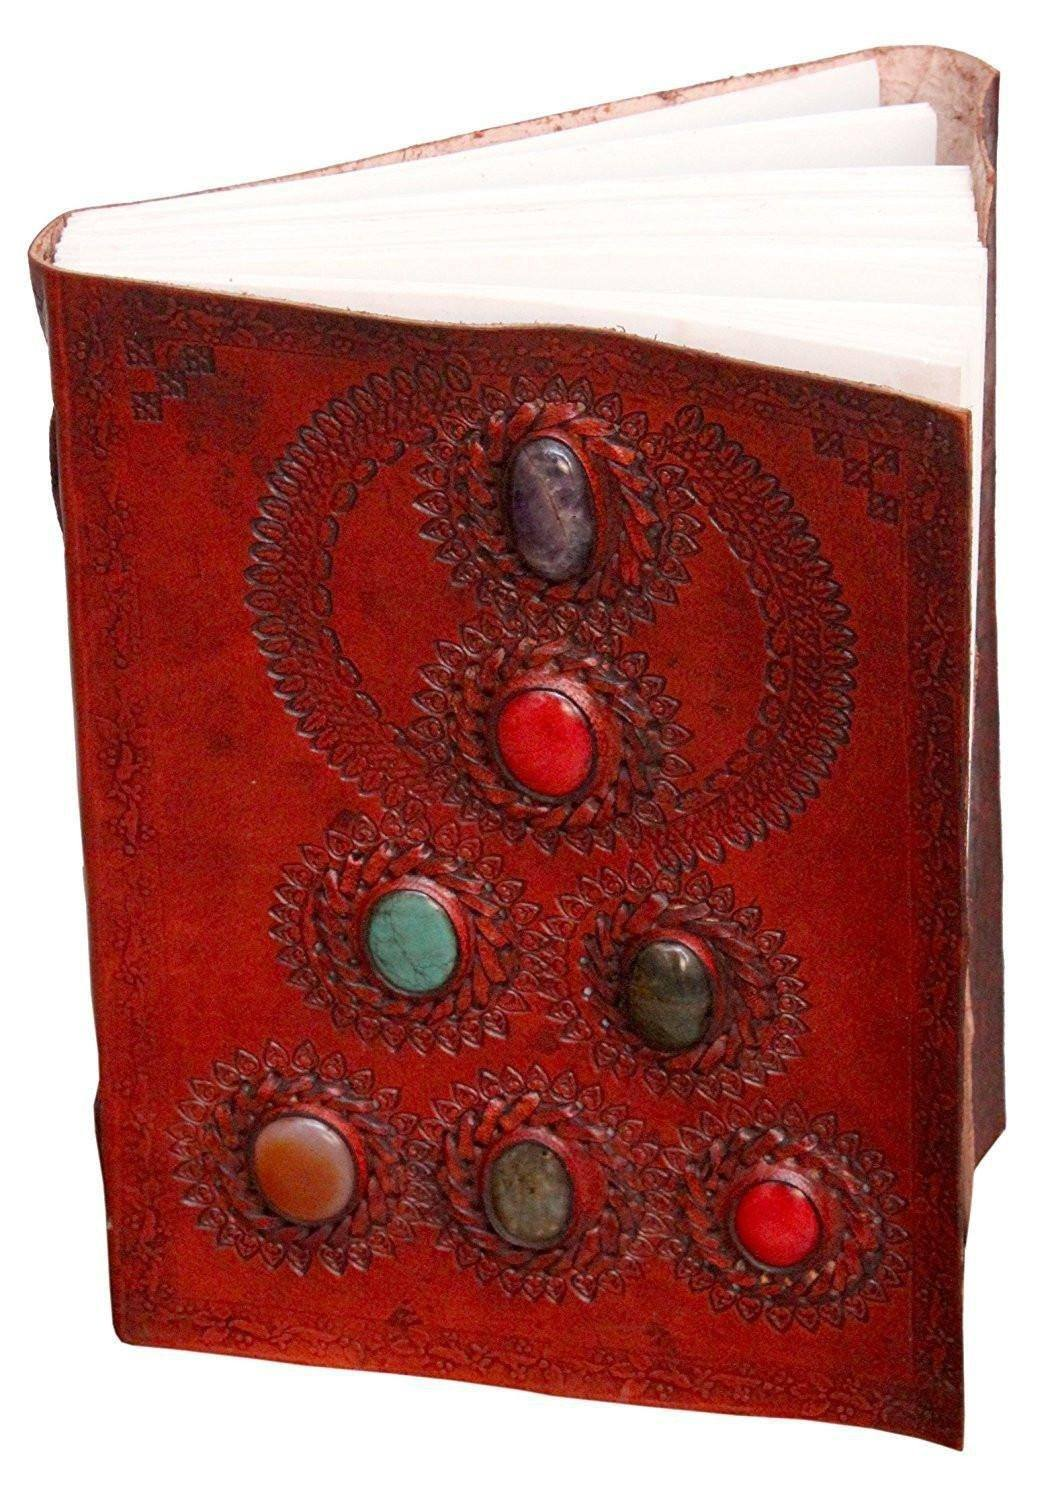 ININDIA Pure Genuine Real Vintage Hunter Leather Handmadepaper Notebook Diary